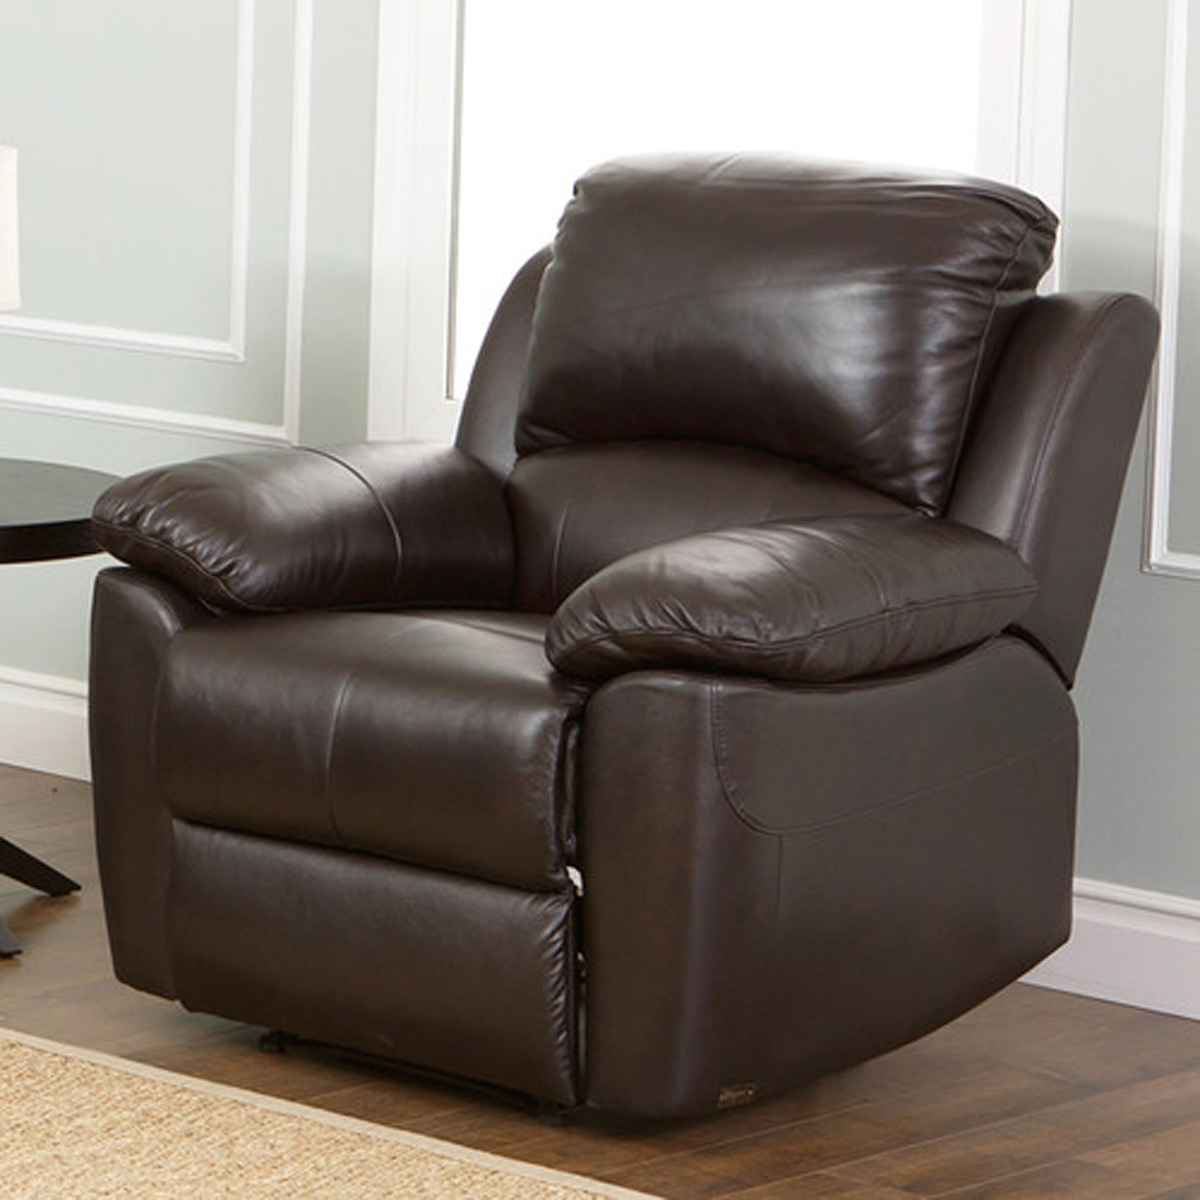 Abbyson Living Westwood Top Grain Leather Chair - Brown